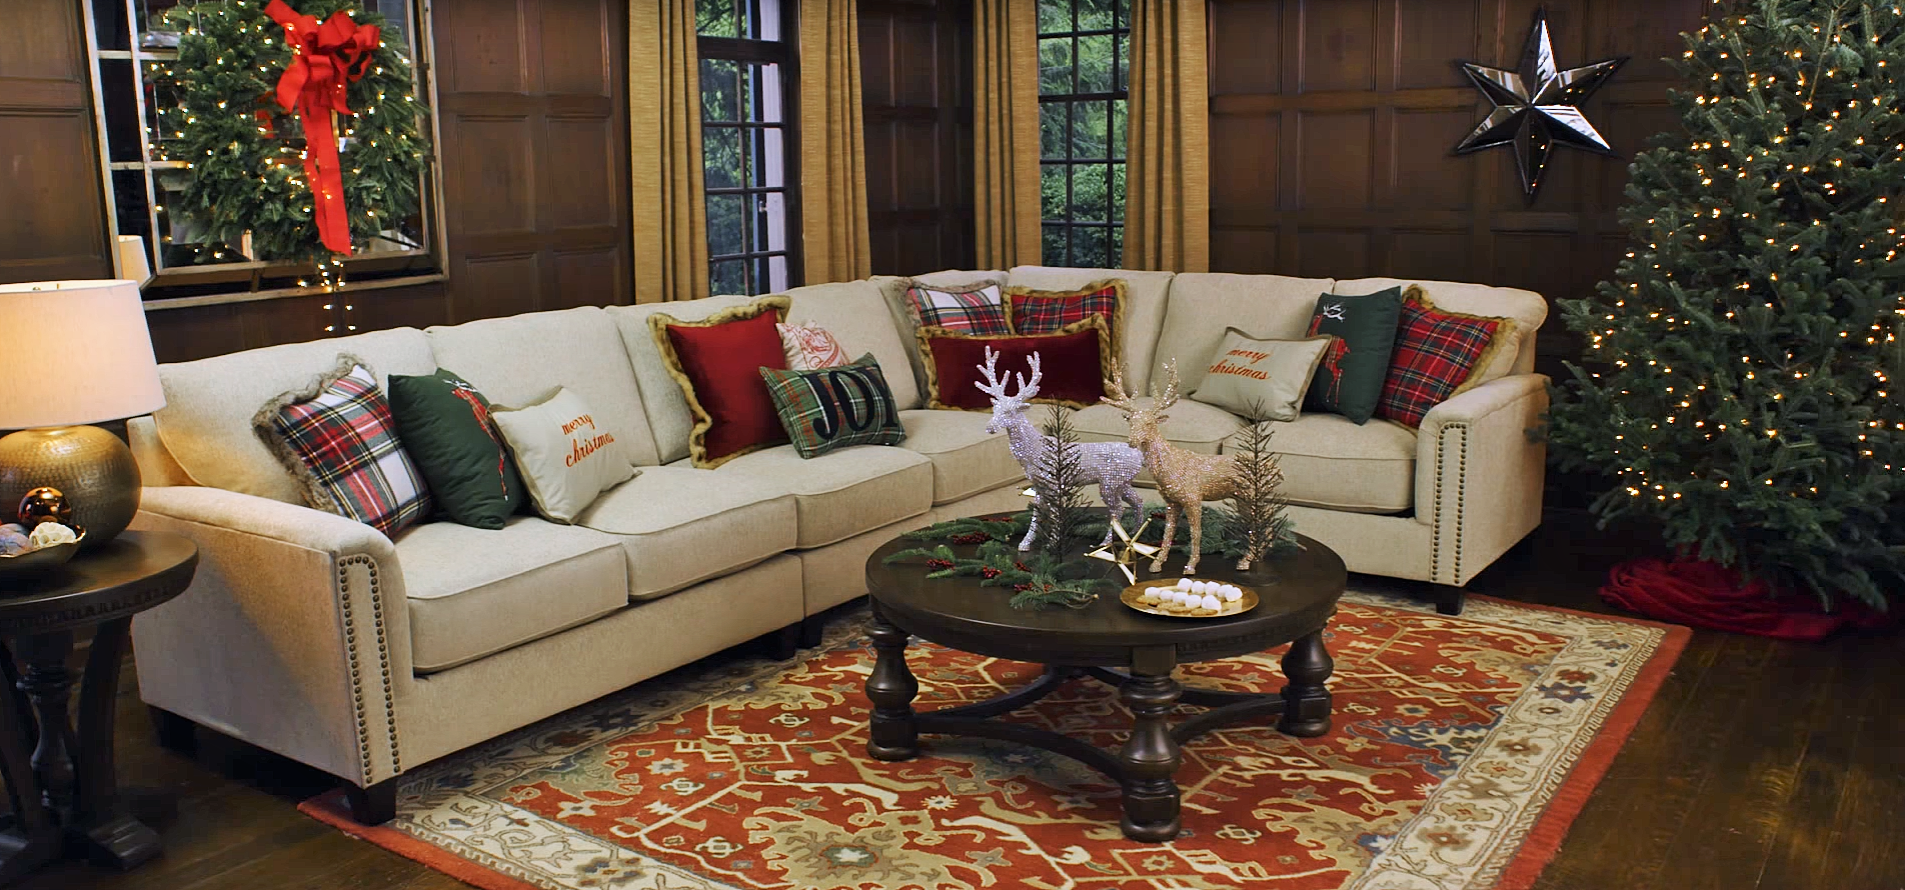 Holiday living room refresh ashley furniture homestore blog - Home furnishing stores ...